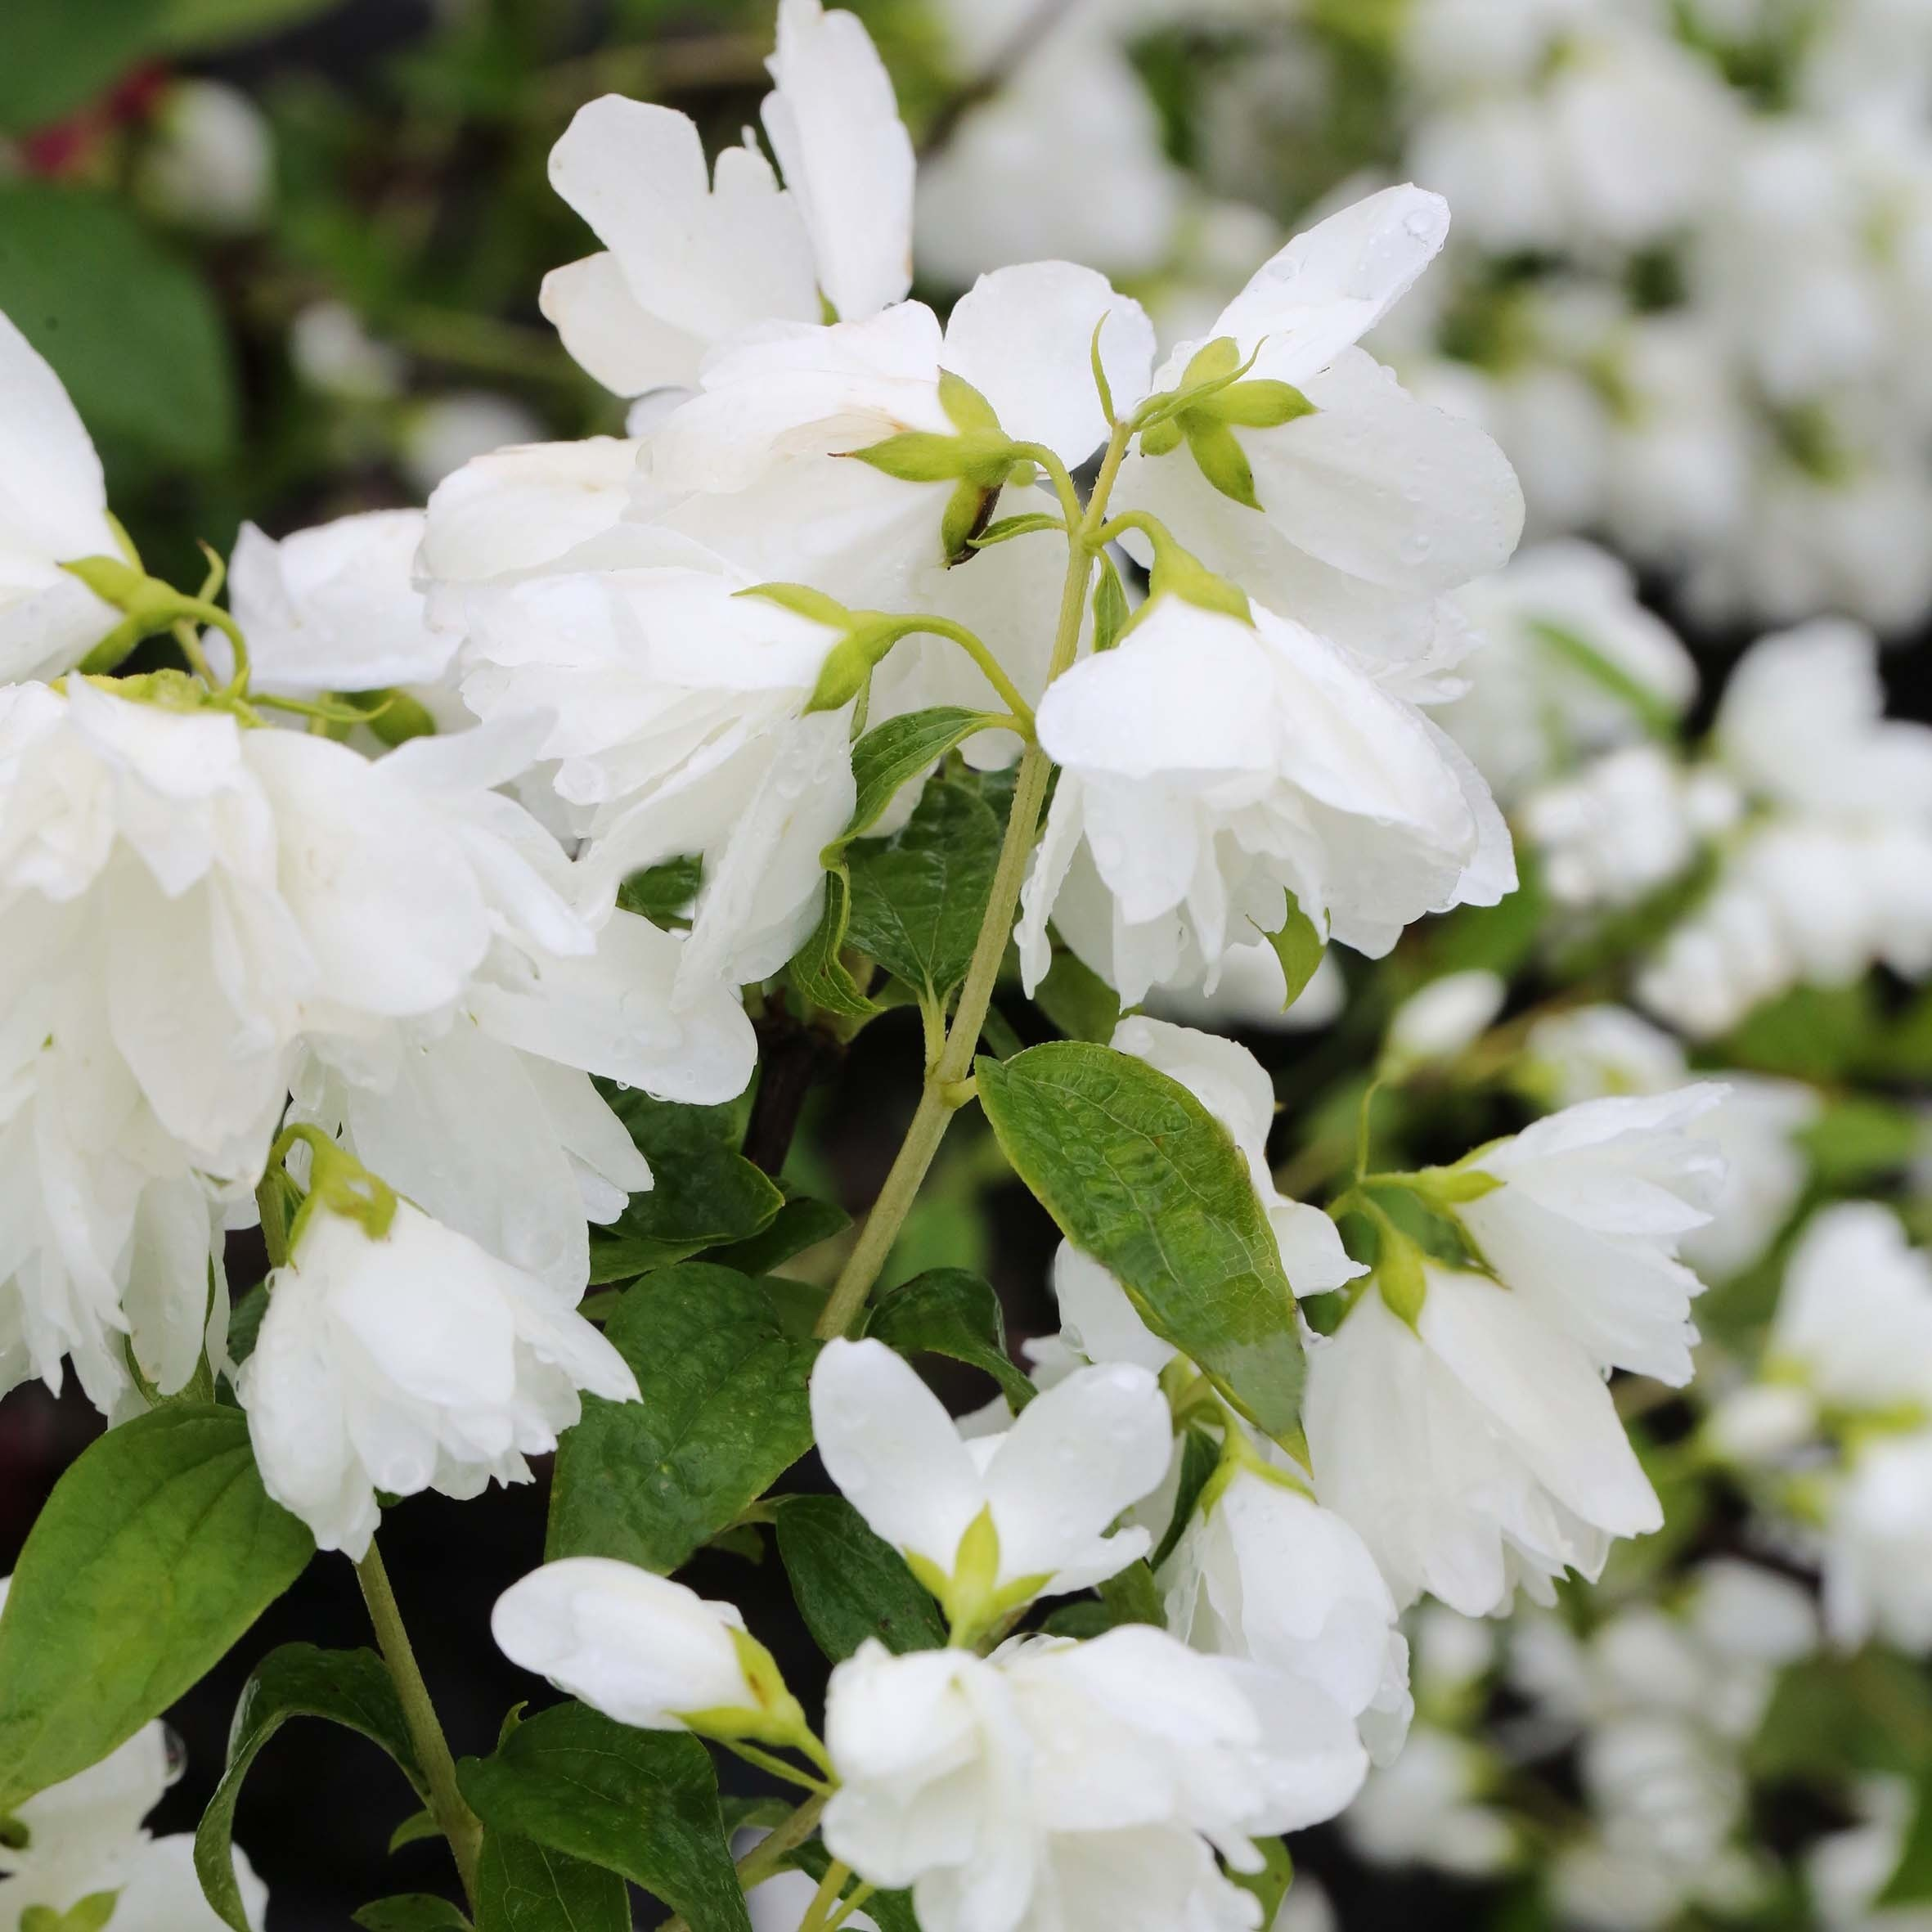 Philadelphus Little White Love - Seringat nain.